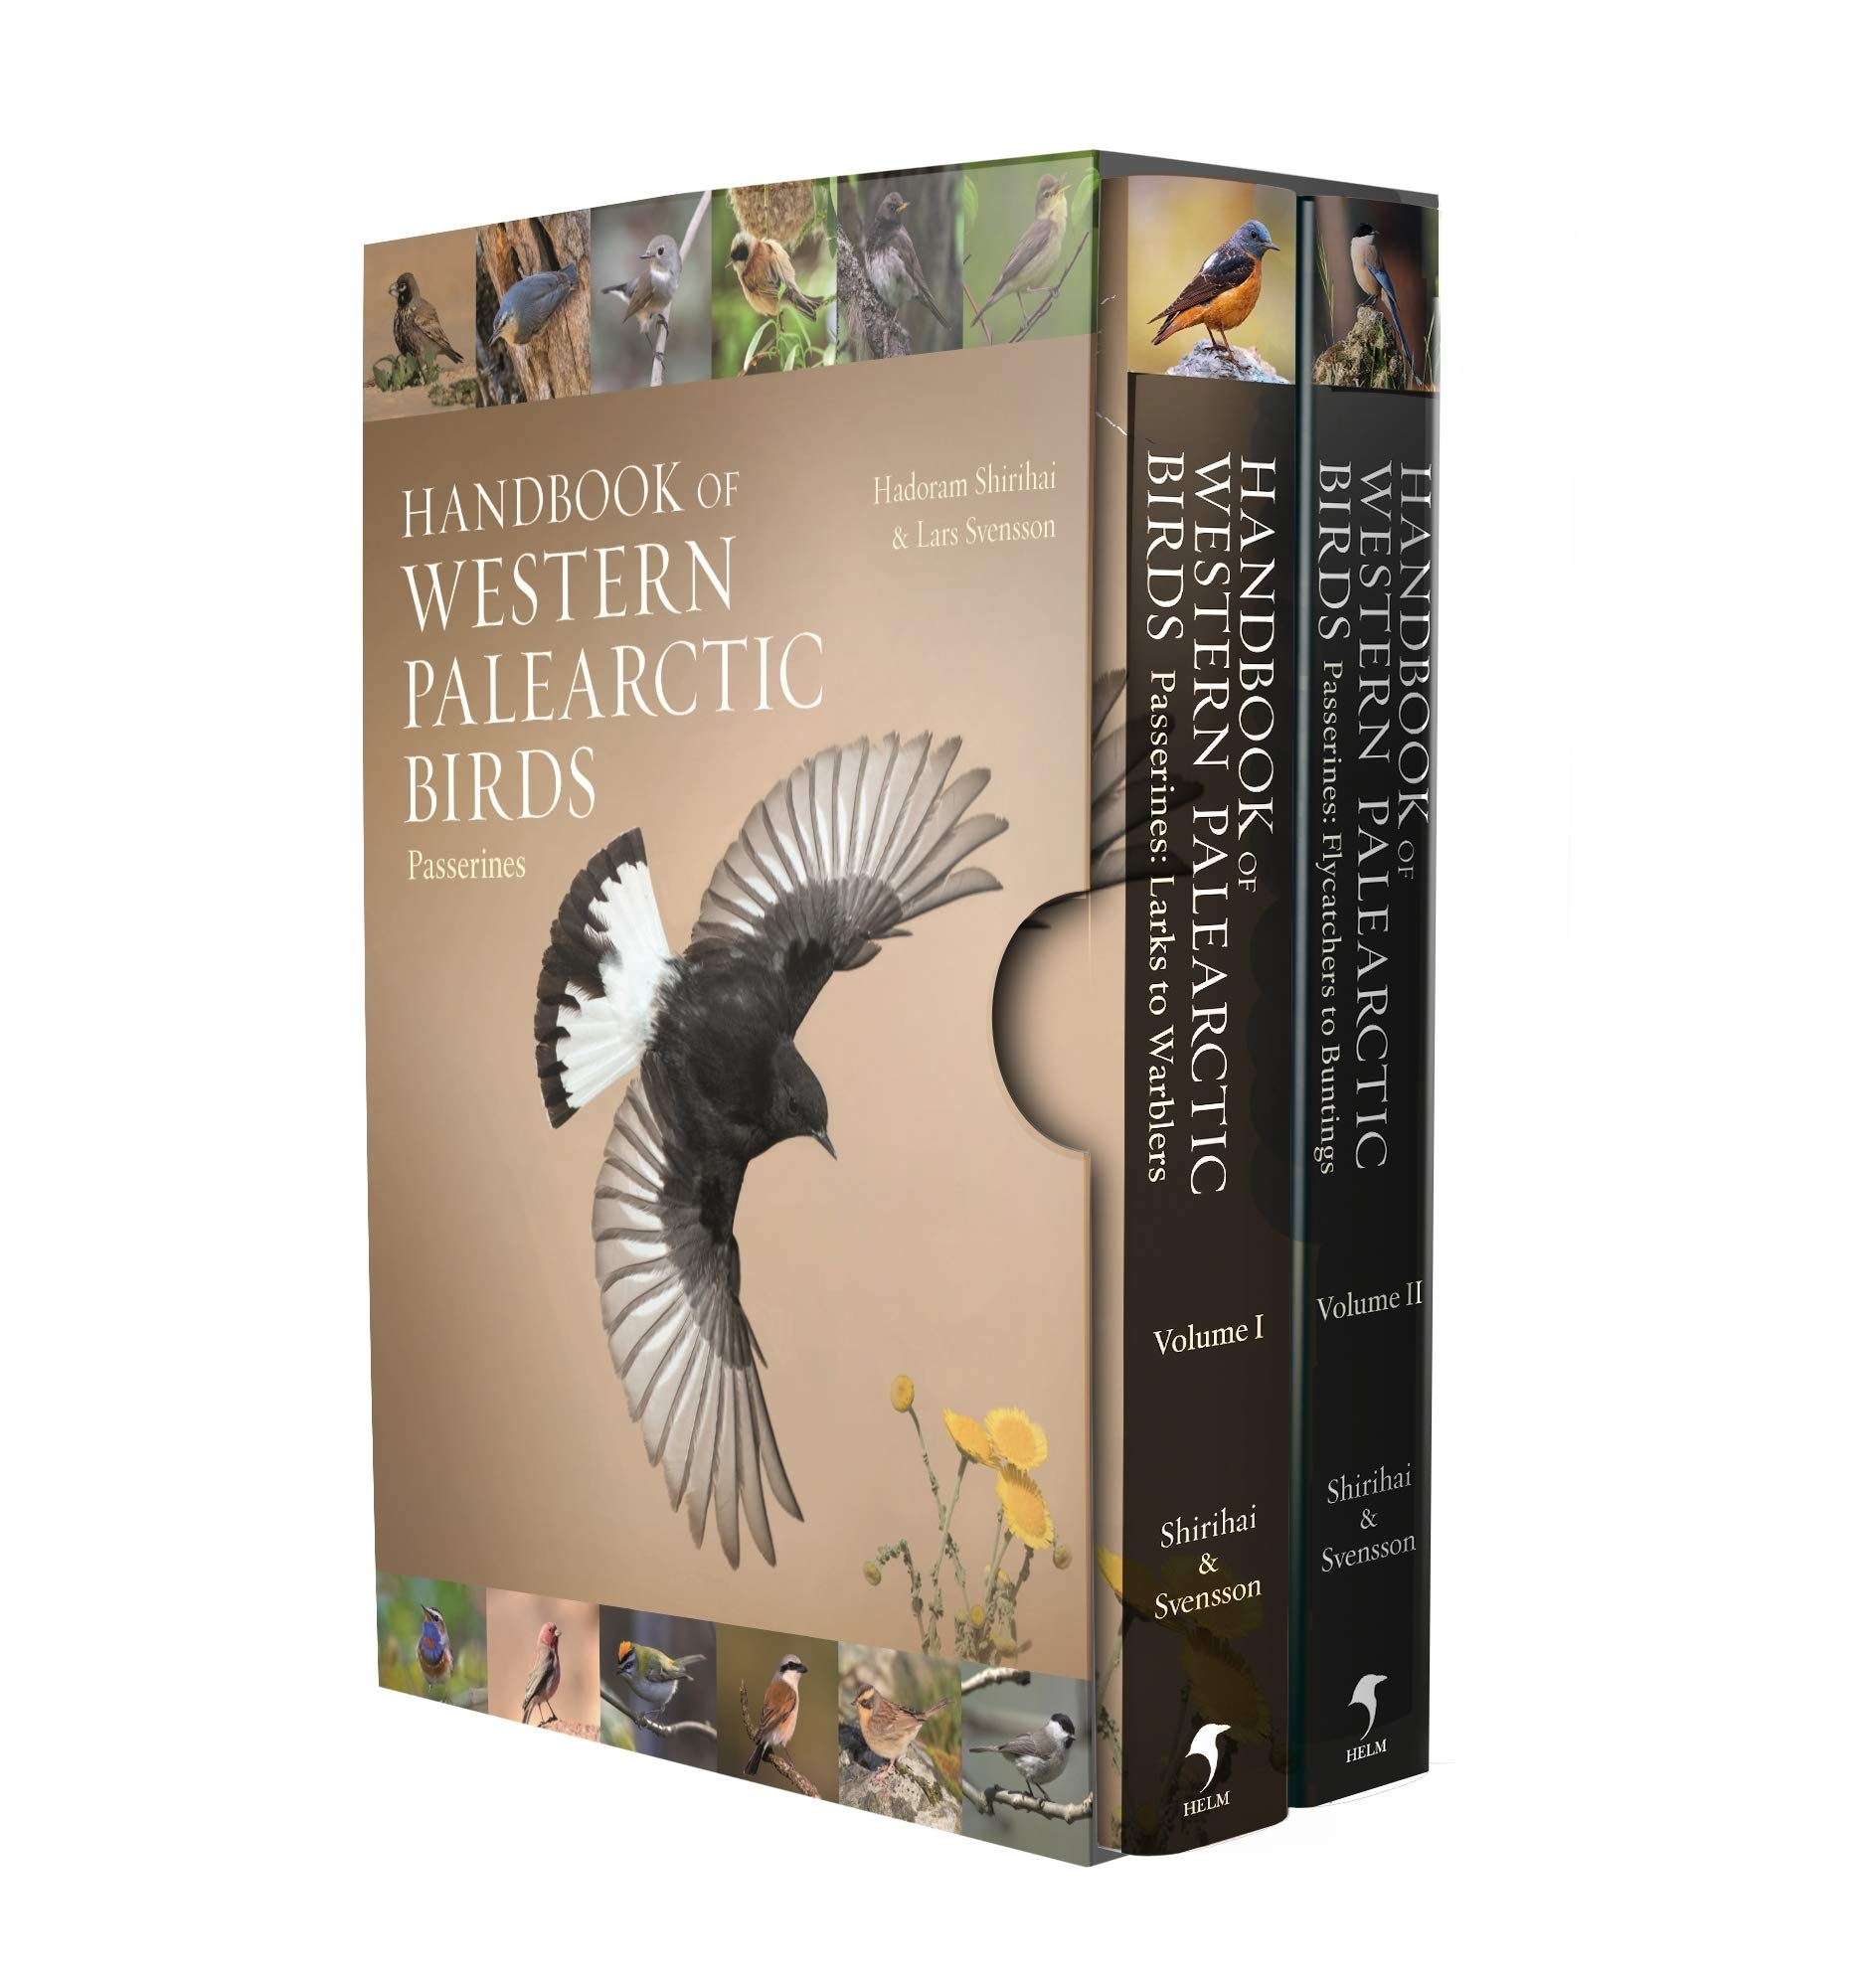 Birds of the Western Palearctic: A Photographic Guide